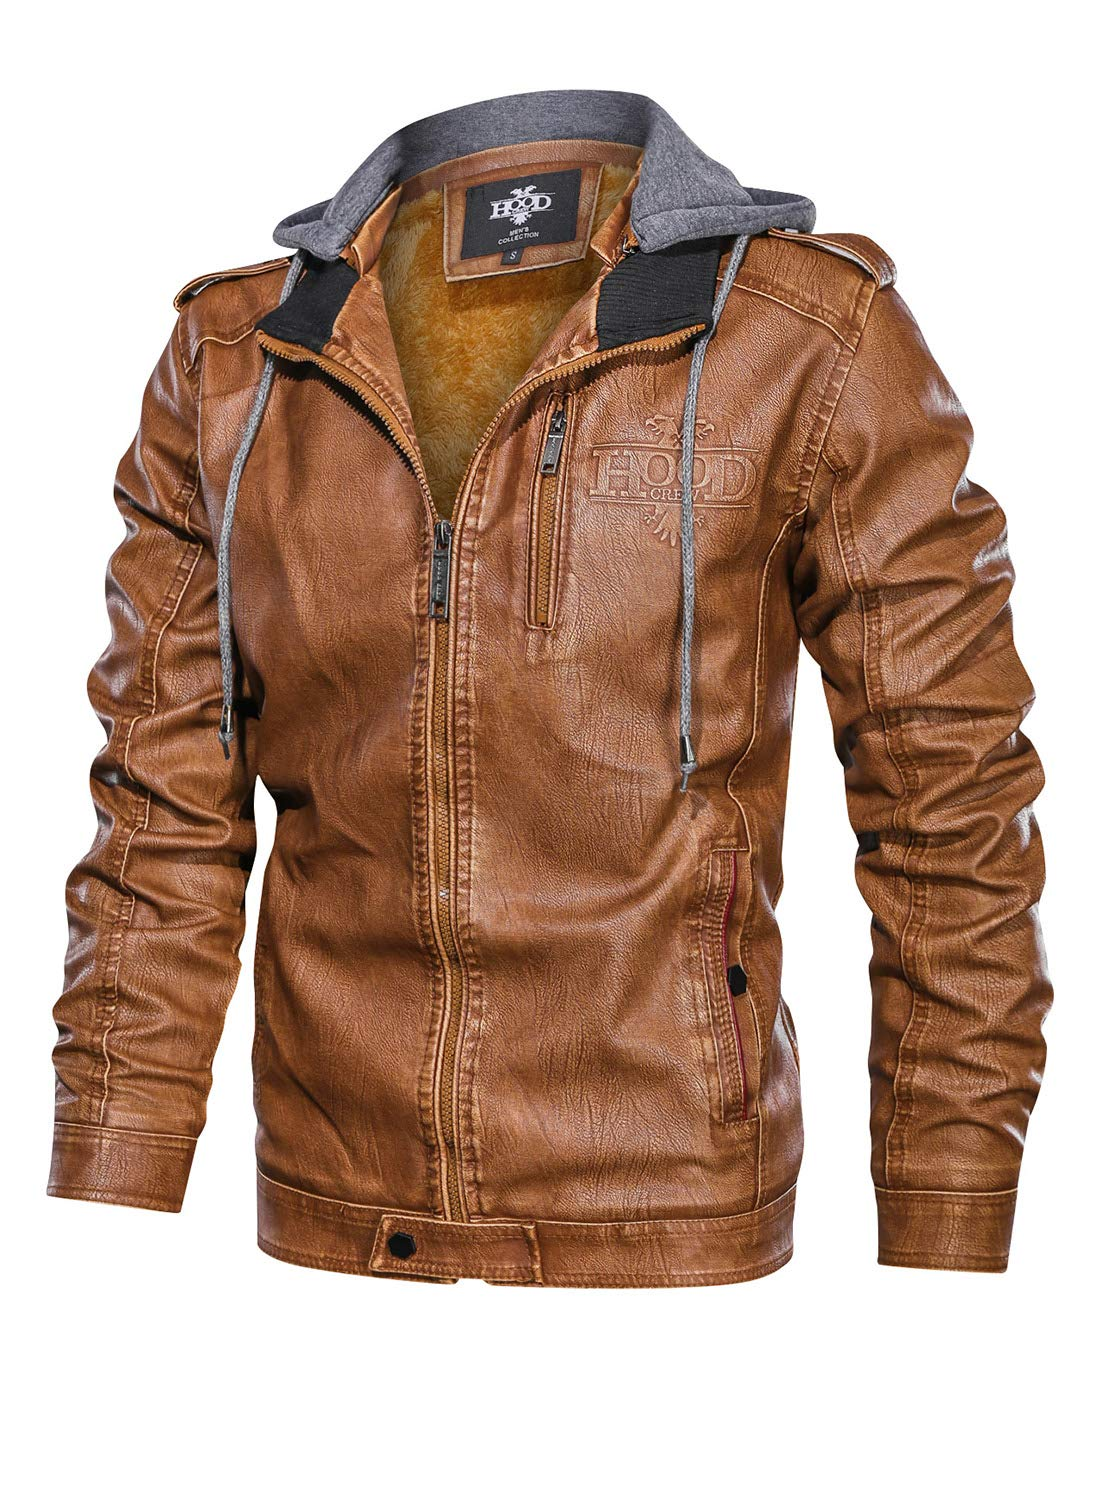 HOOD CREW Men's Brown Stand Collar Warm PU Faux Leather Zip-Up Motorcycle Jacket with a Removable Hood by HOOD CREW